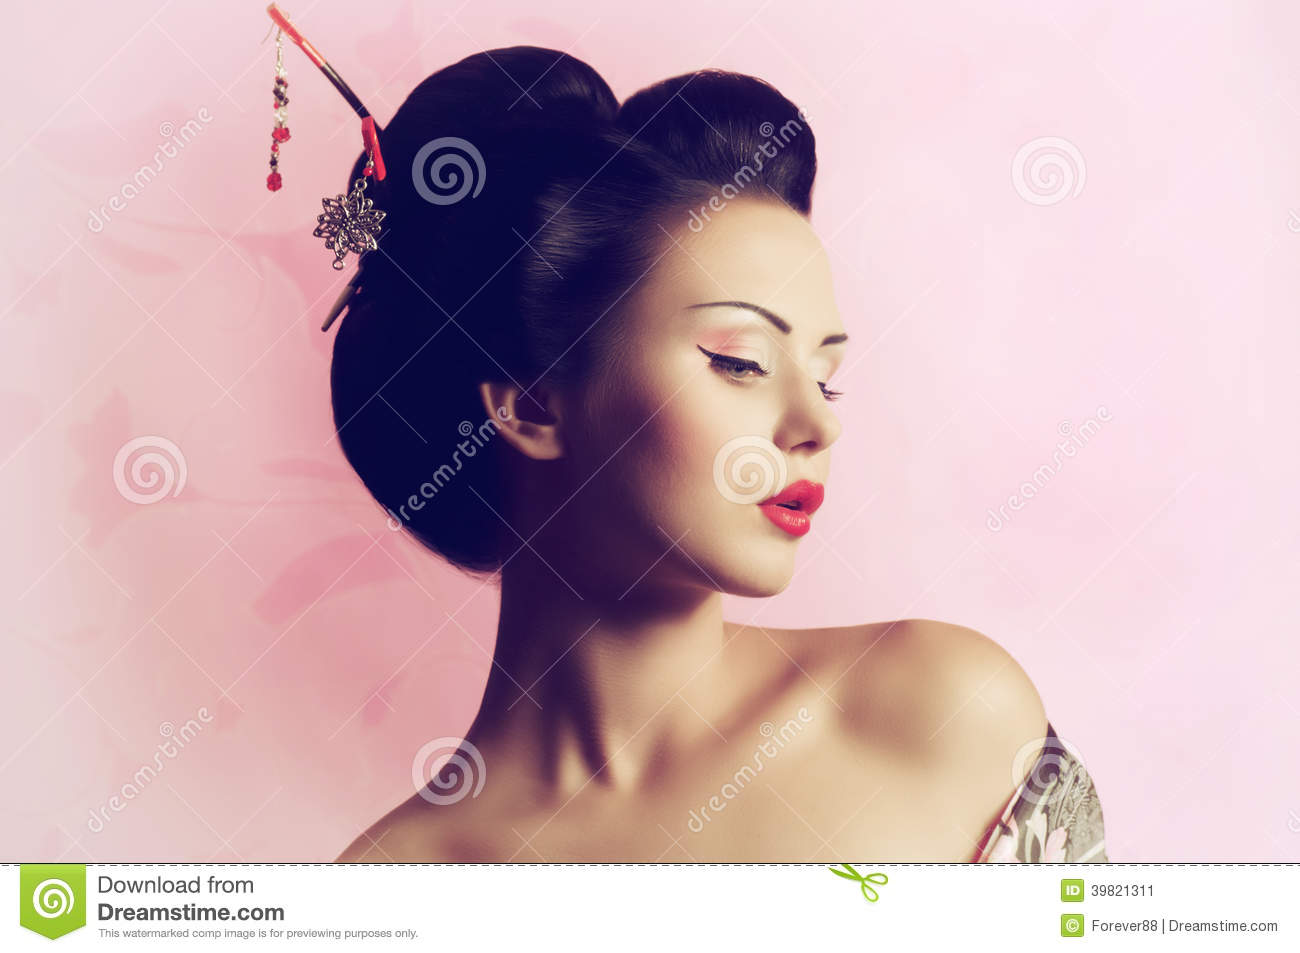 Japanese Geisha Woman Stock Photo Image 39821311